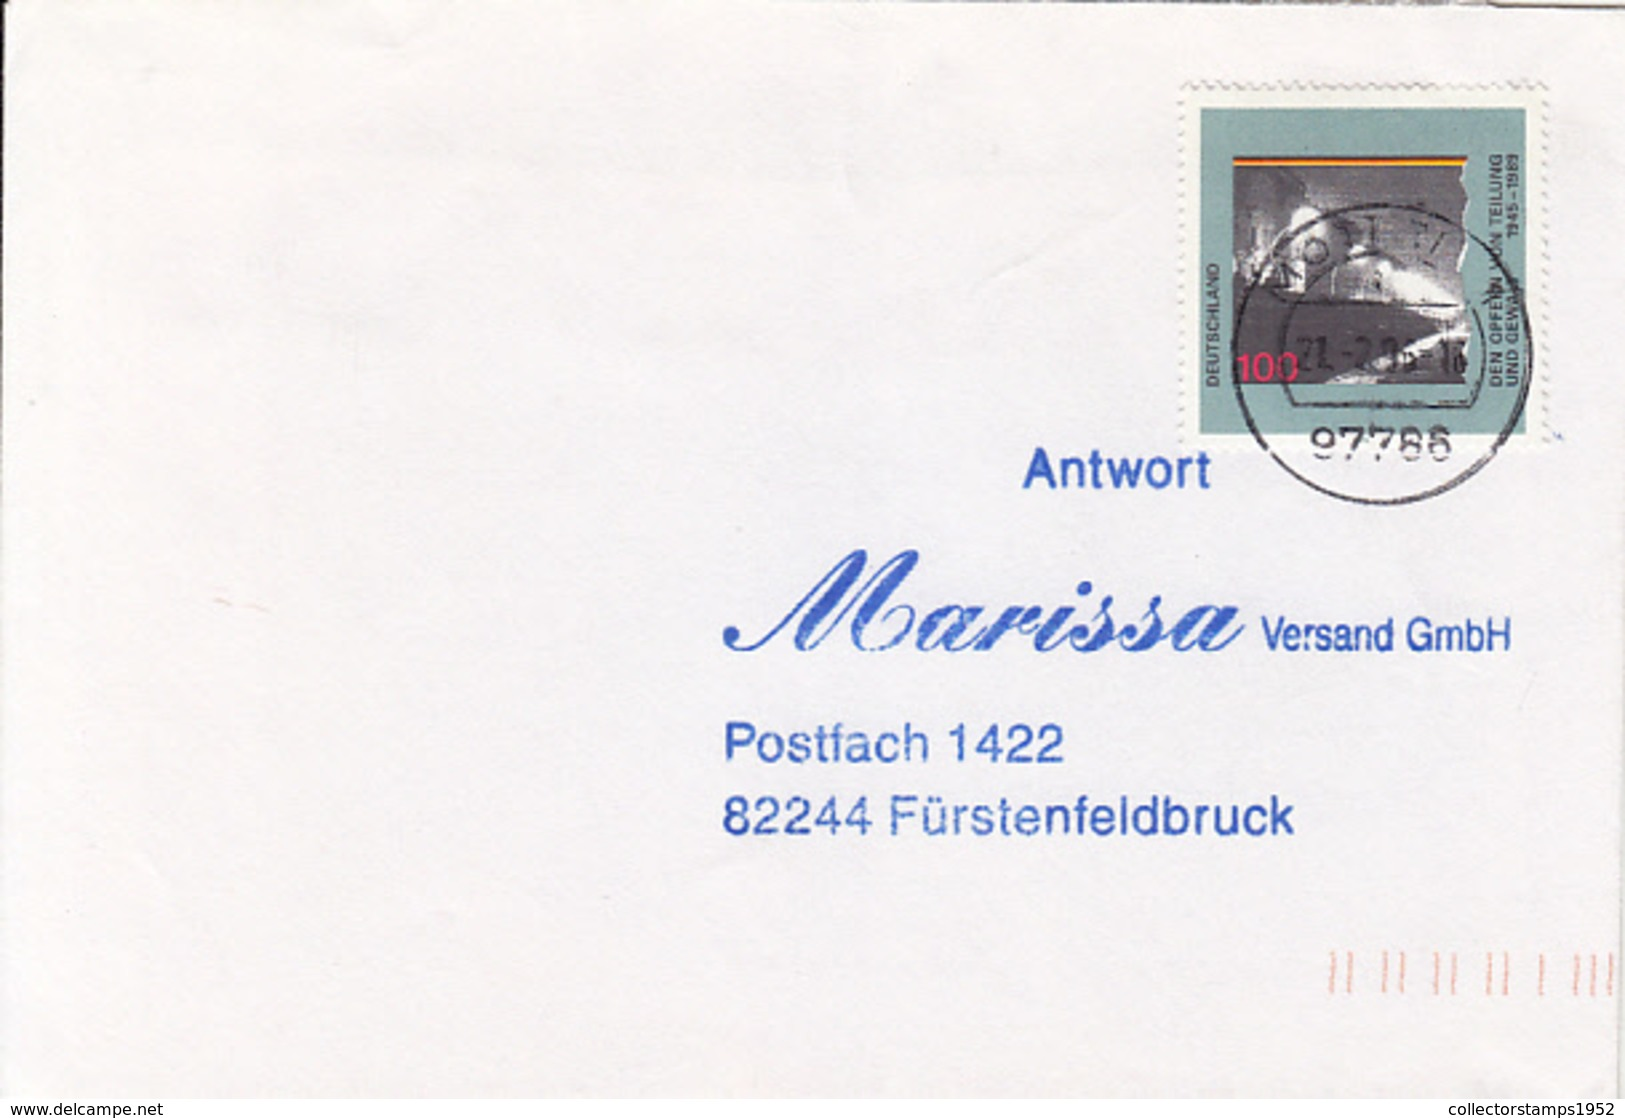 83930- VICTIMS OF GERMANY'S SPLITTING STAMP ON COVER, 1996, GERMANY - Storia Postale